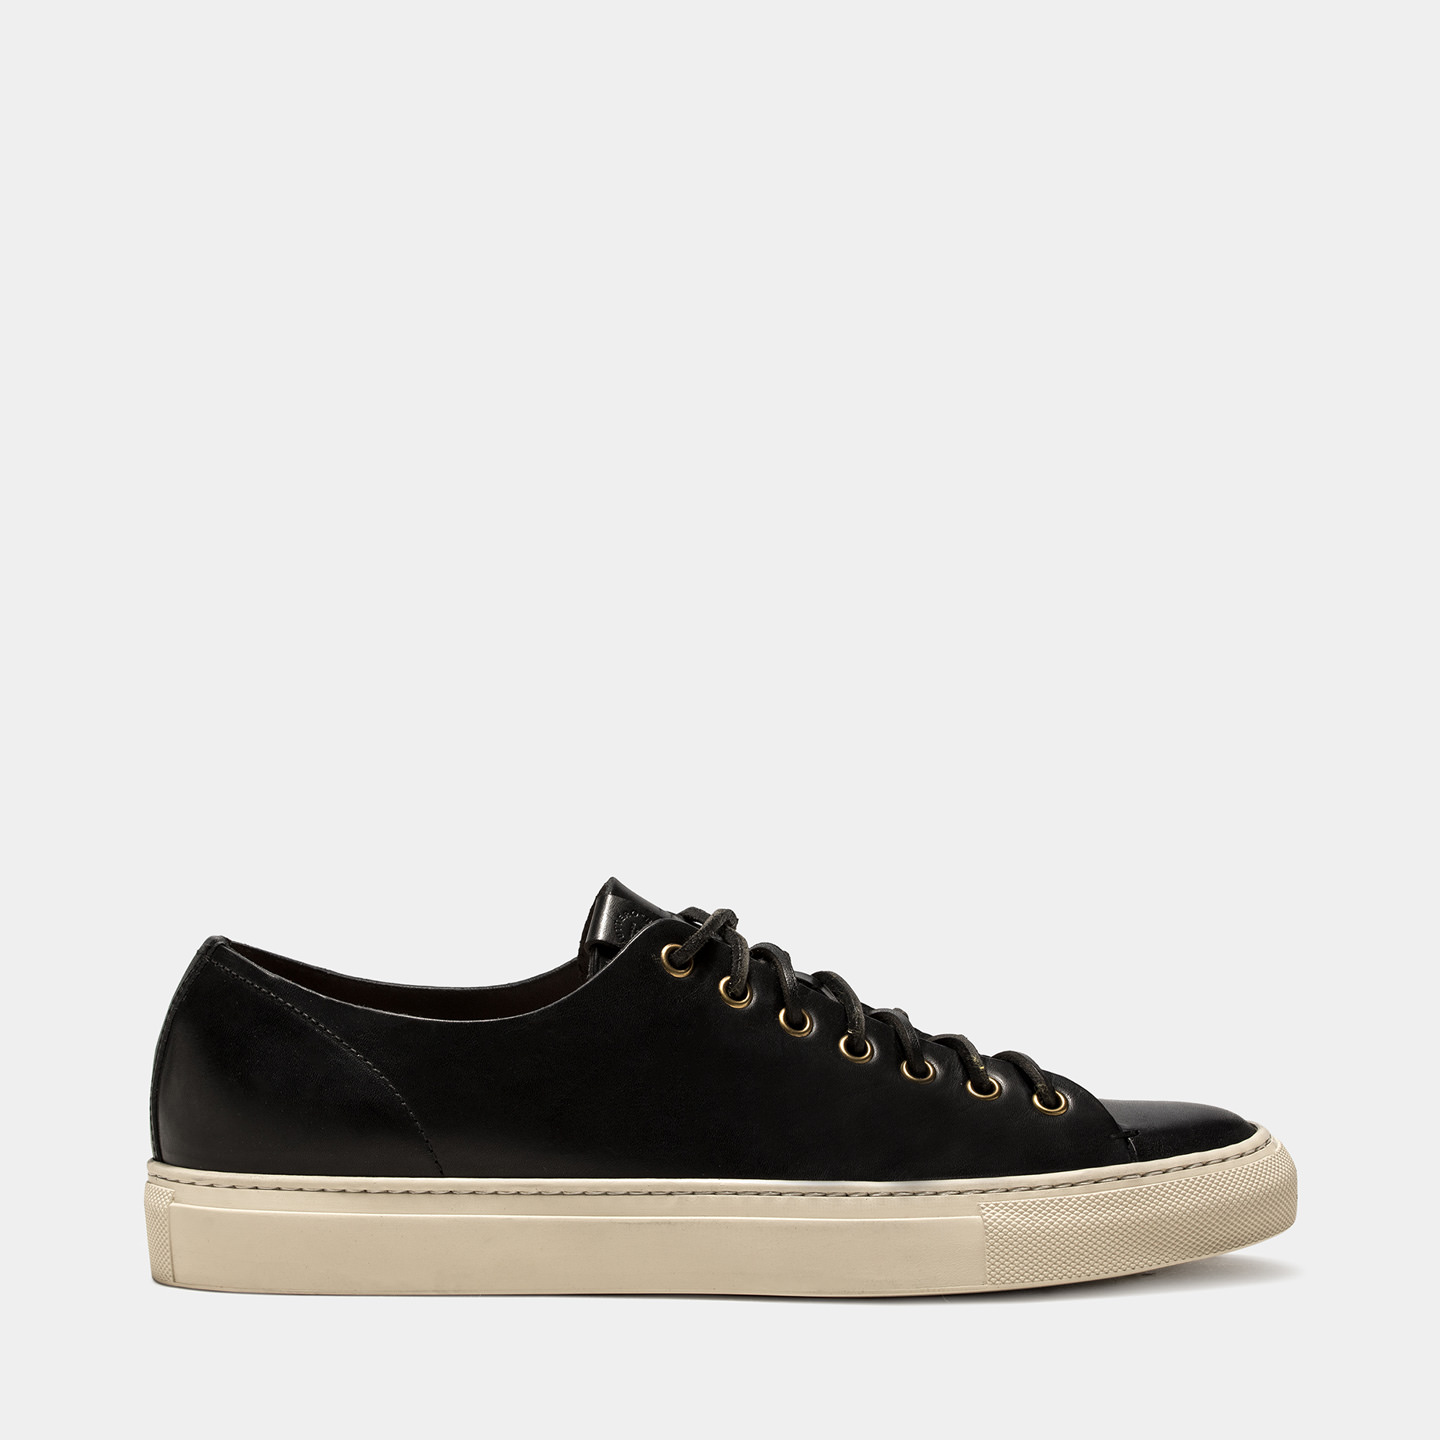 BUTTERO: SNEAKERS TANINO IN PELLE NERA